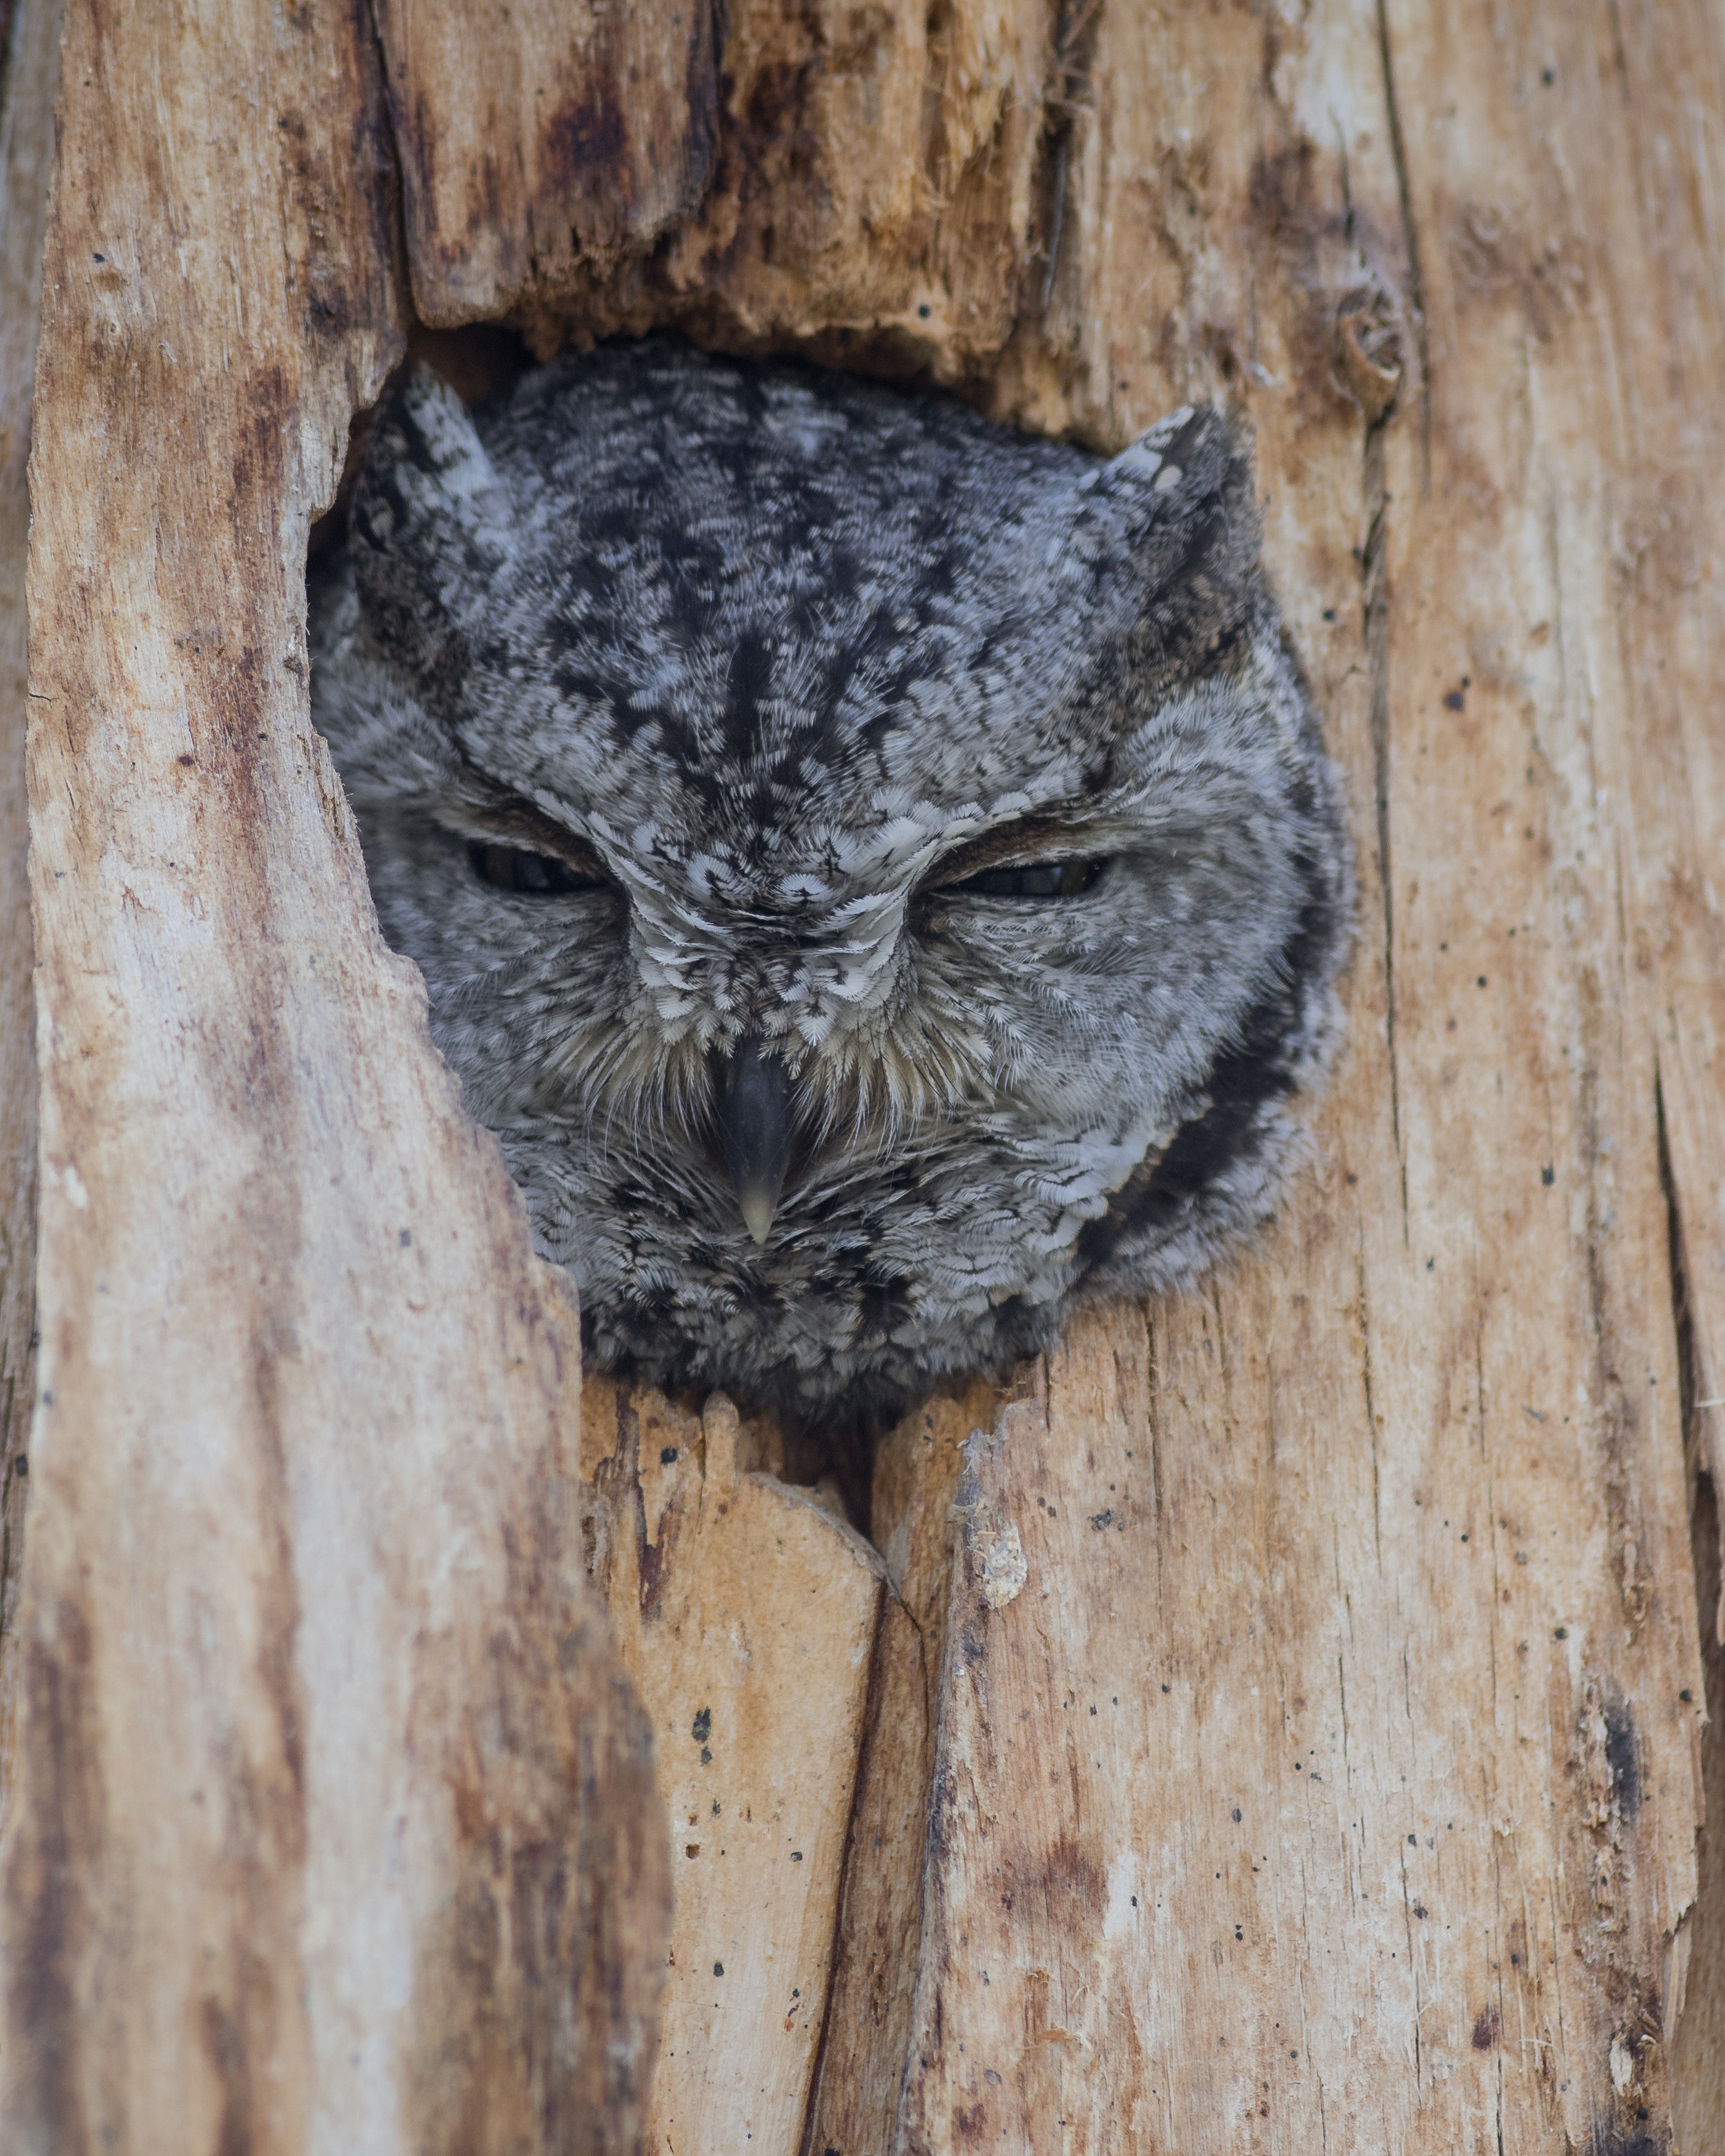 Western Screech Owl (Megascops kennicottii) at Washoe SP, WAS (NV)  EQ: D7200, 300mm f/2.8    Taken: 2-15-2016 at 14:21   Settings: 450mm (35mm eqiv), 1/250s, f/4.0, ISO400, +1/3EV     Conditions: Sunny